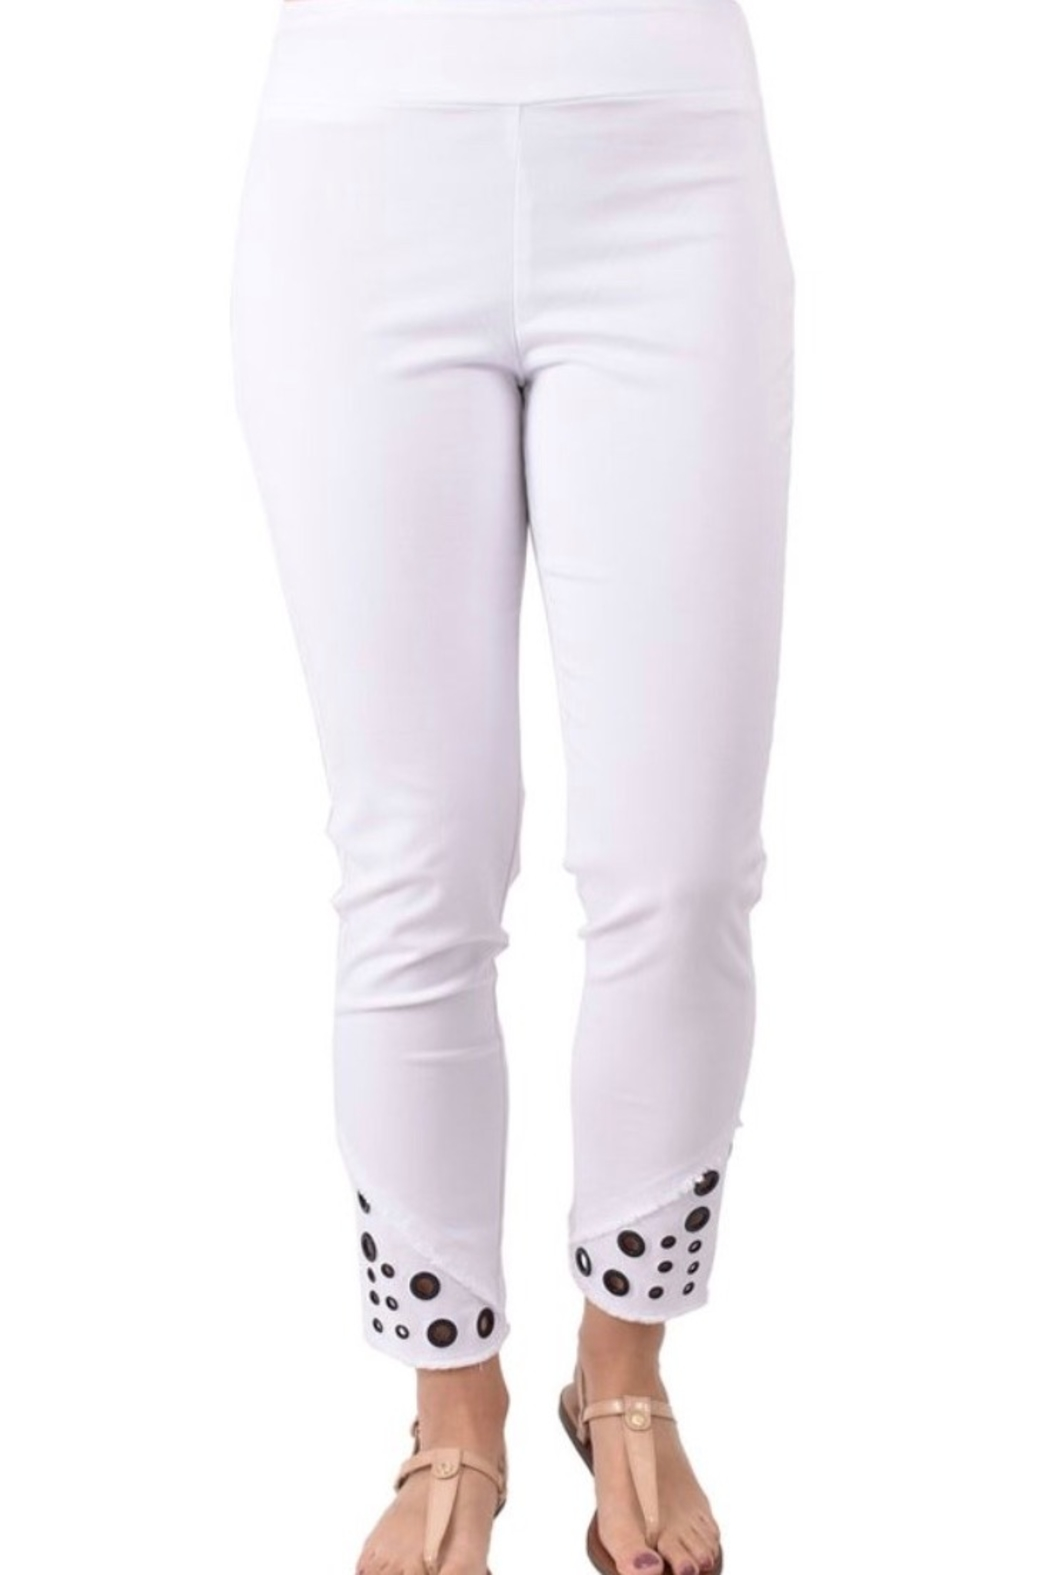 Ethyl Escondido Pull on white ankle pant with frayed hem and grommets. - Main Image